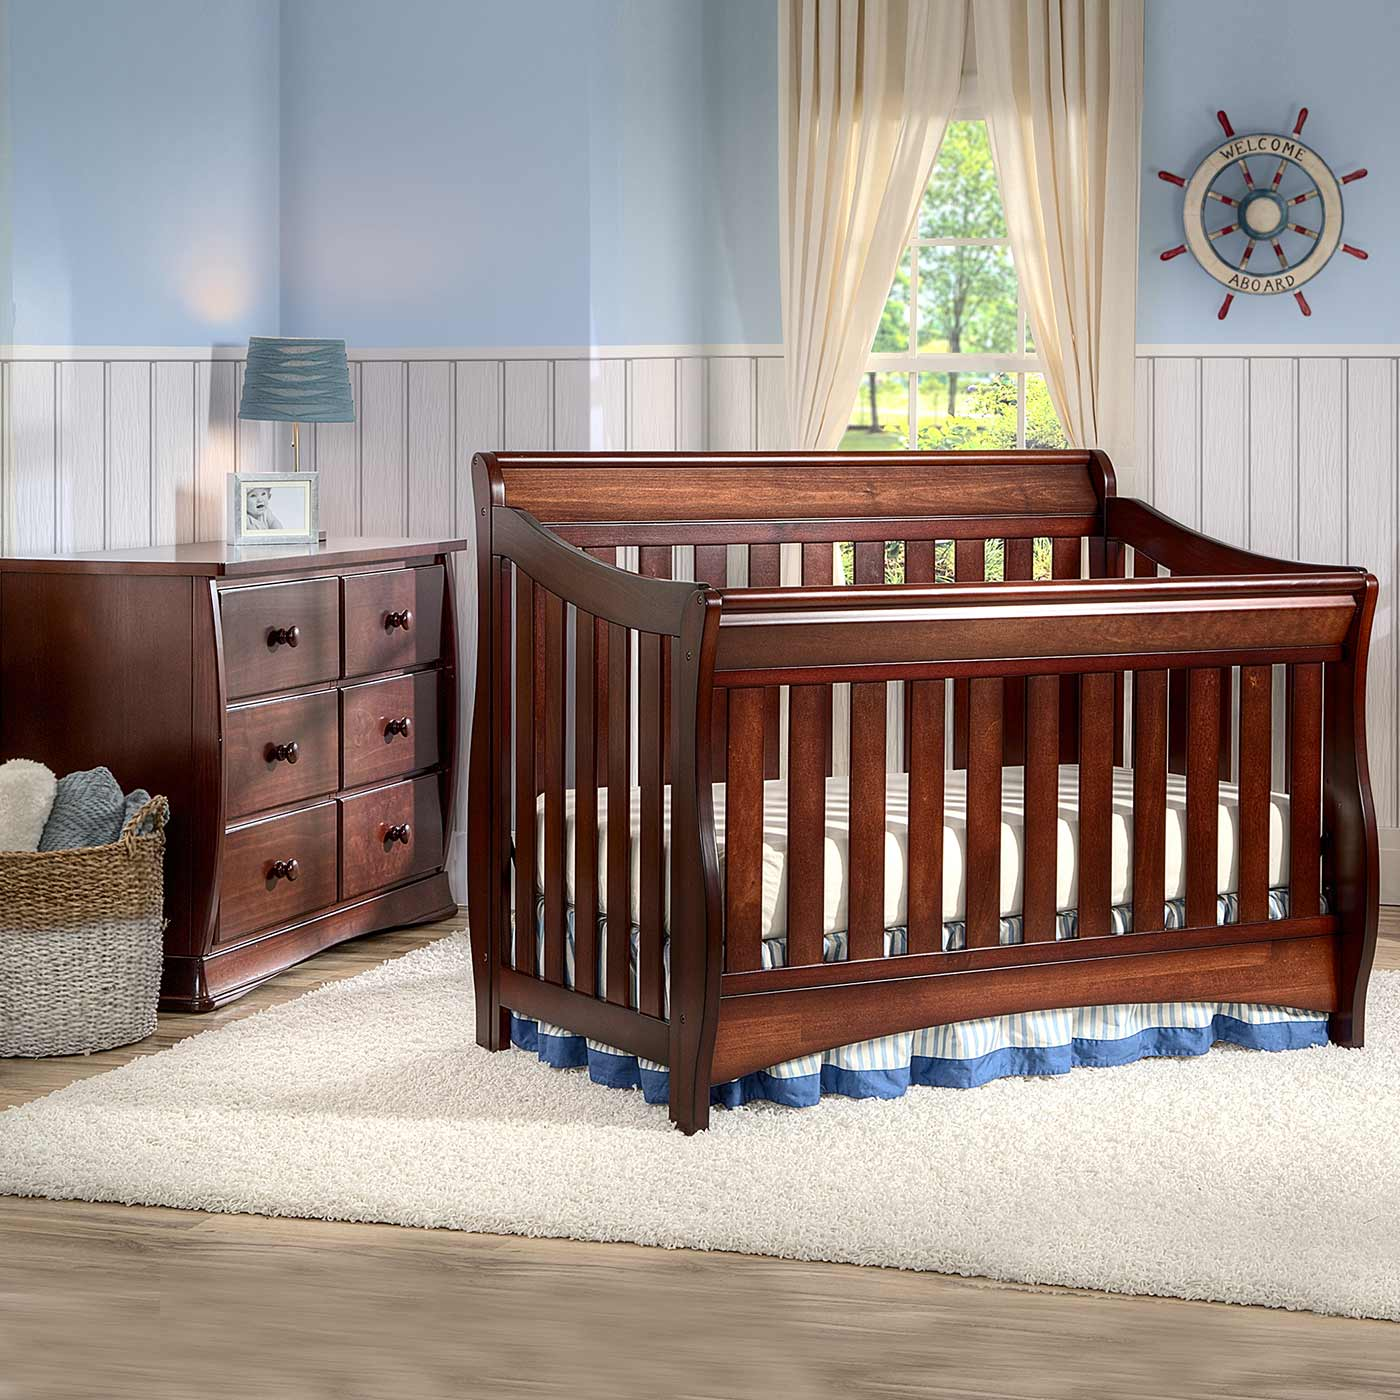 Delta Bentley 2 Piece Nursery Set Convertible Crib And 6 Drawer Dresser In Black Cherry Free Shipping